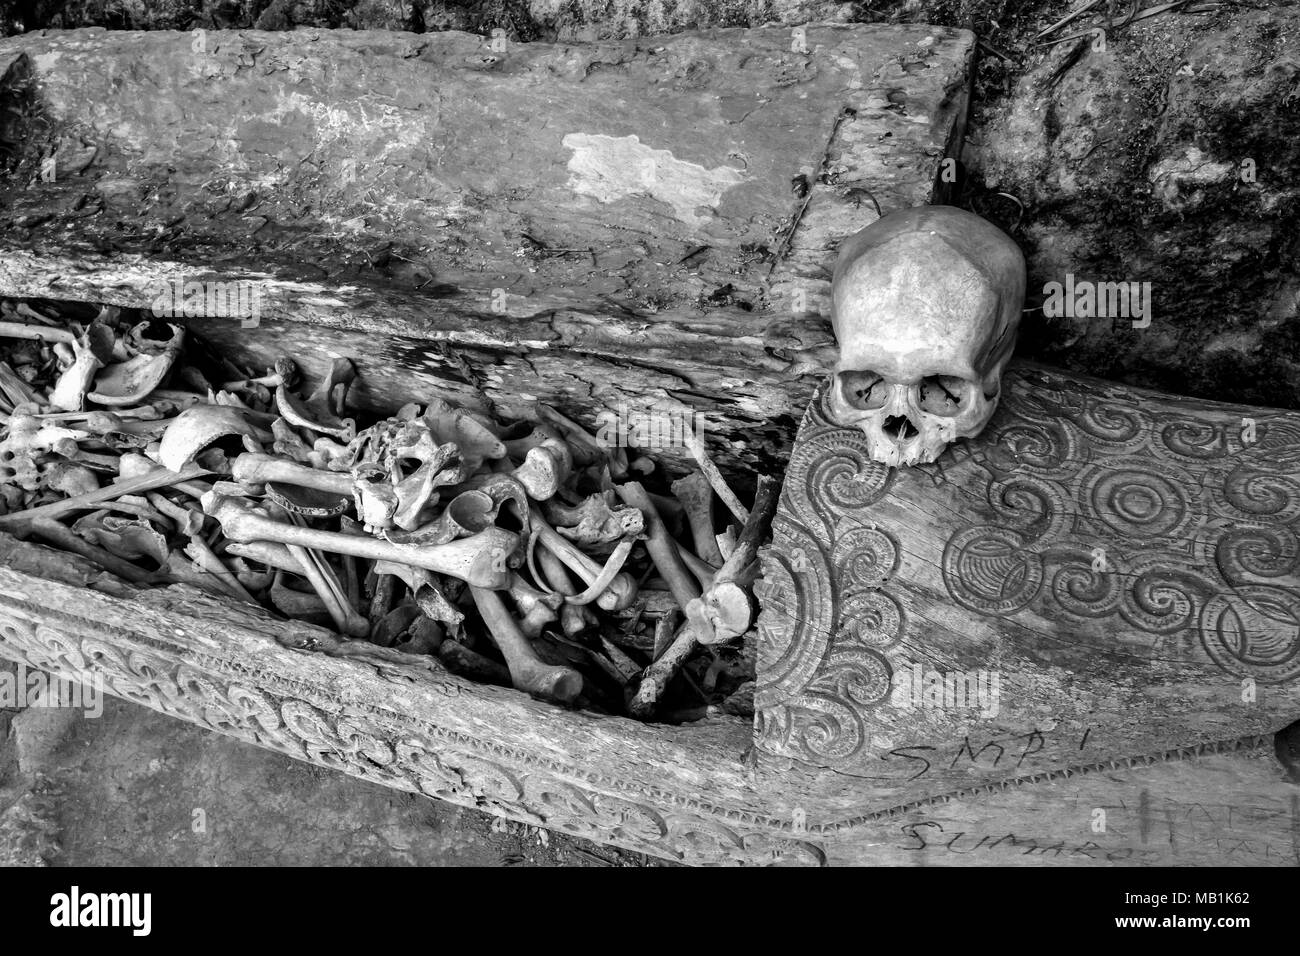 Tana Toraja - funerals, graves, burial sites in caves. Human sculls around burial sites are common. South Sulawesi, Indonesia. - Stock Image